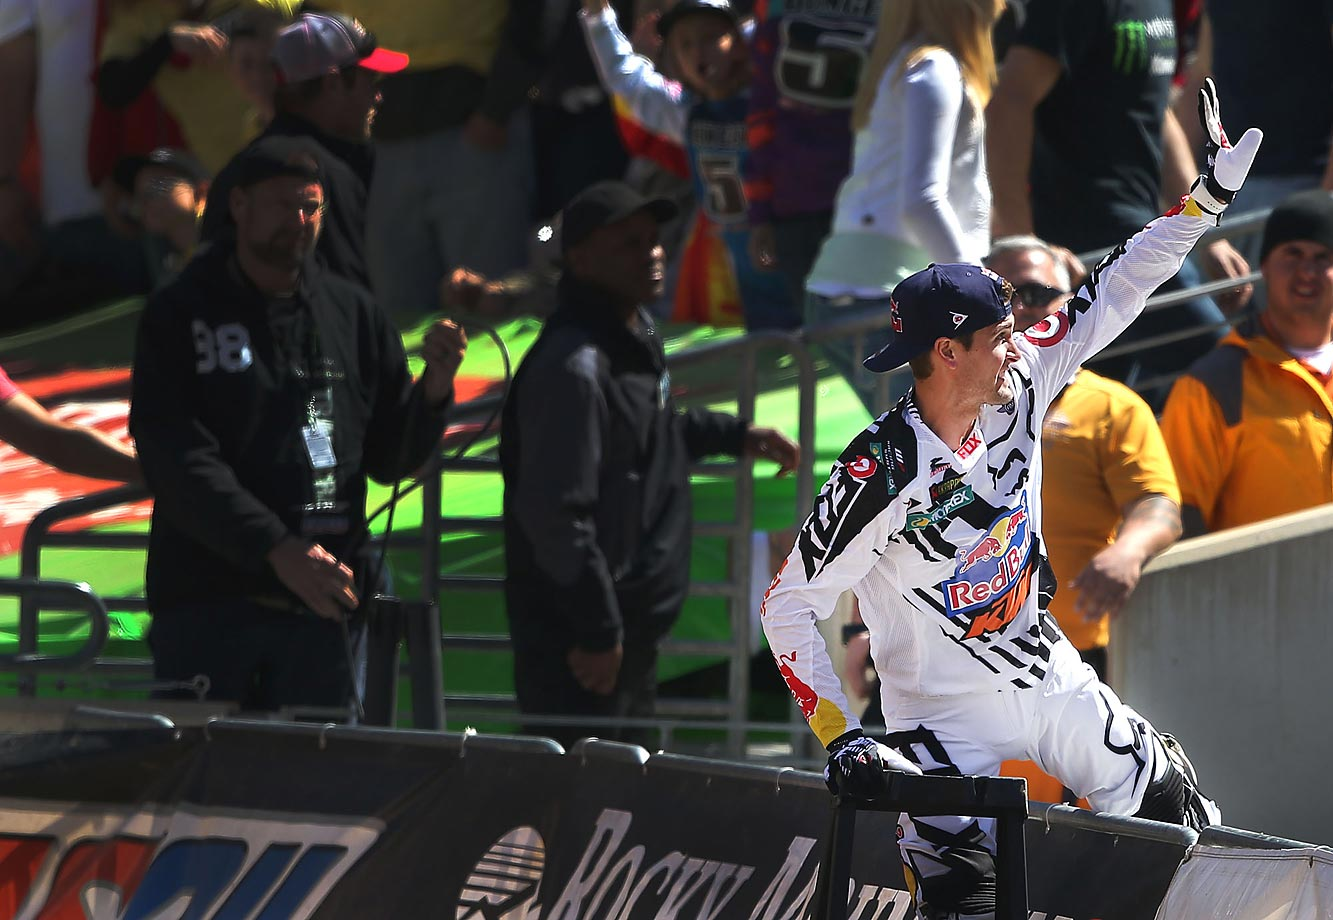 Dungey waves to fans before Saturday's Supercross event.